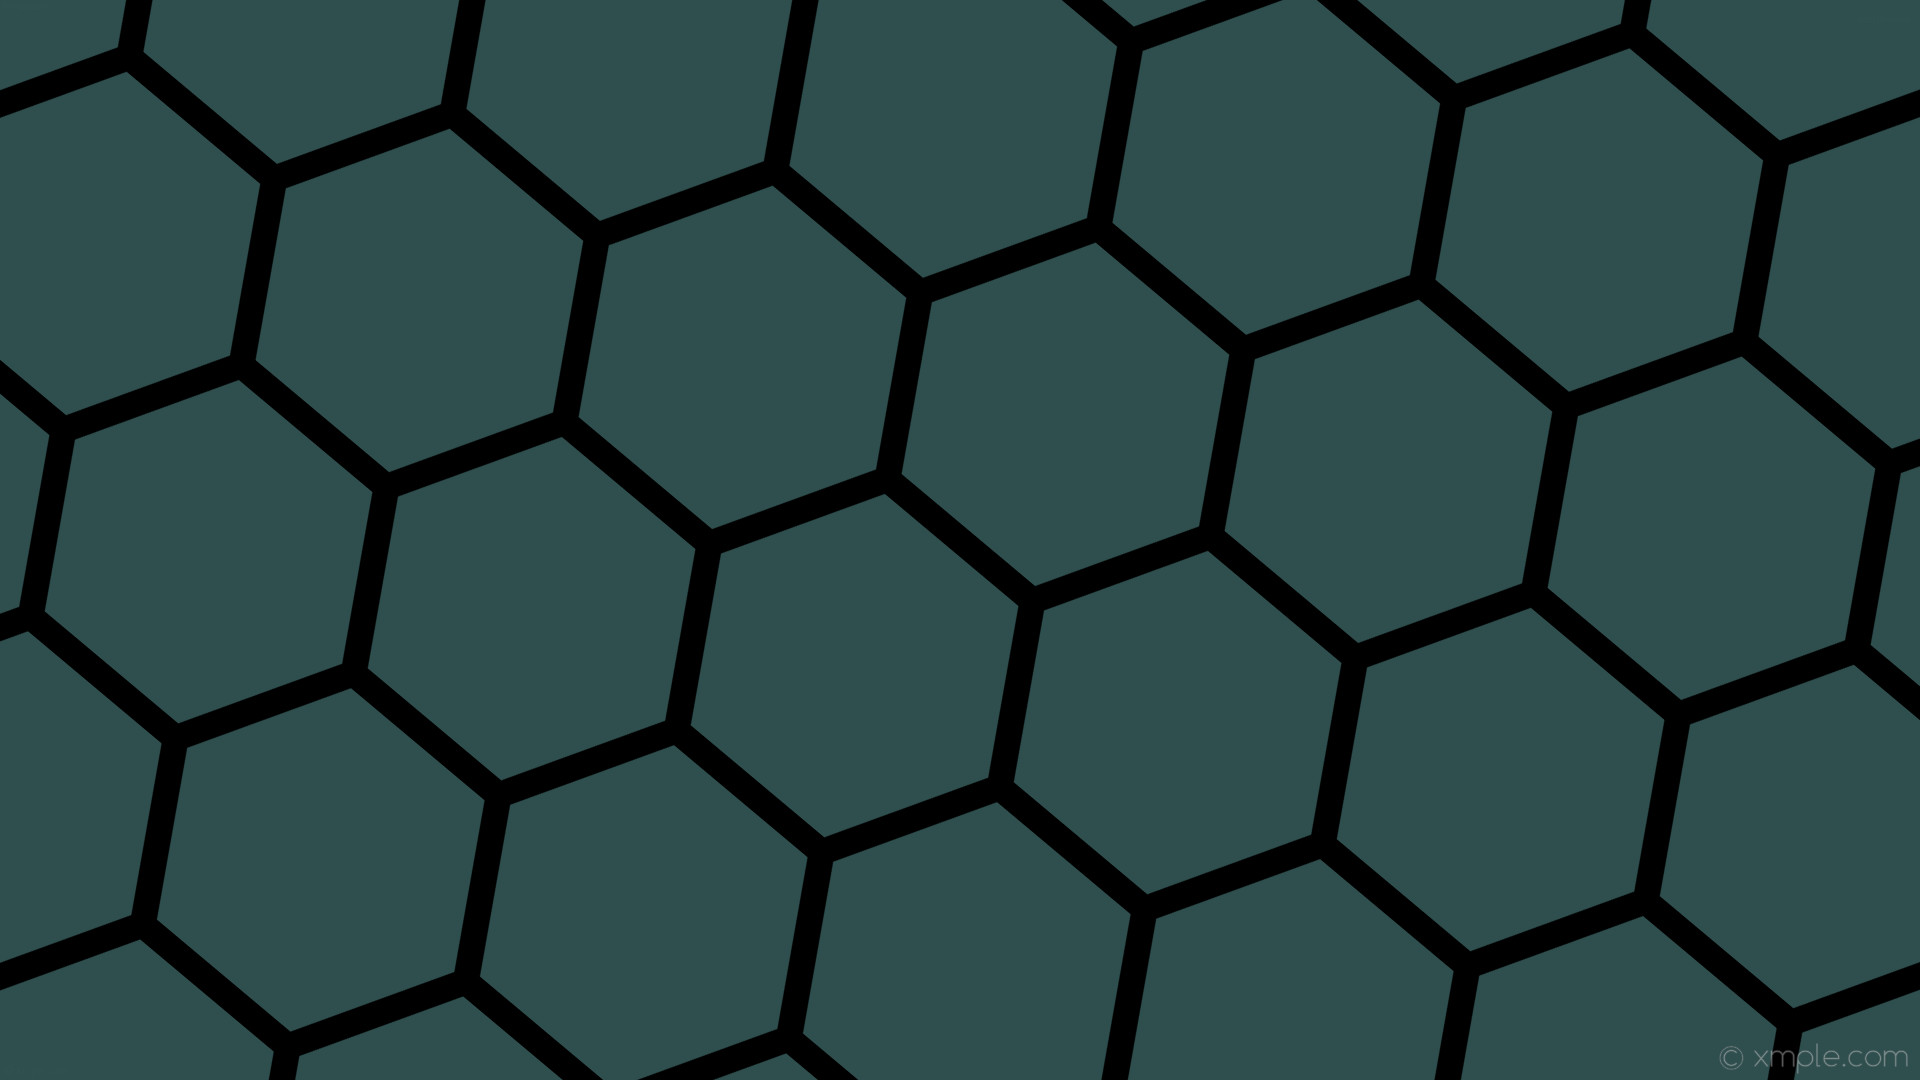 Res: 1920x1080, wallpaper beehive grey honeycomb black hexagon dark slate gray #2f4f4f  #000000 diagonal 50°